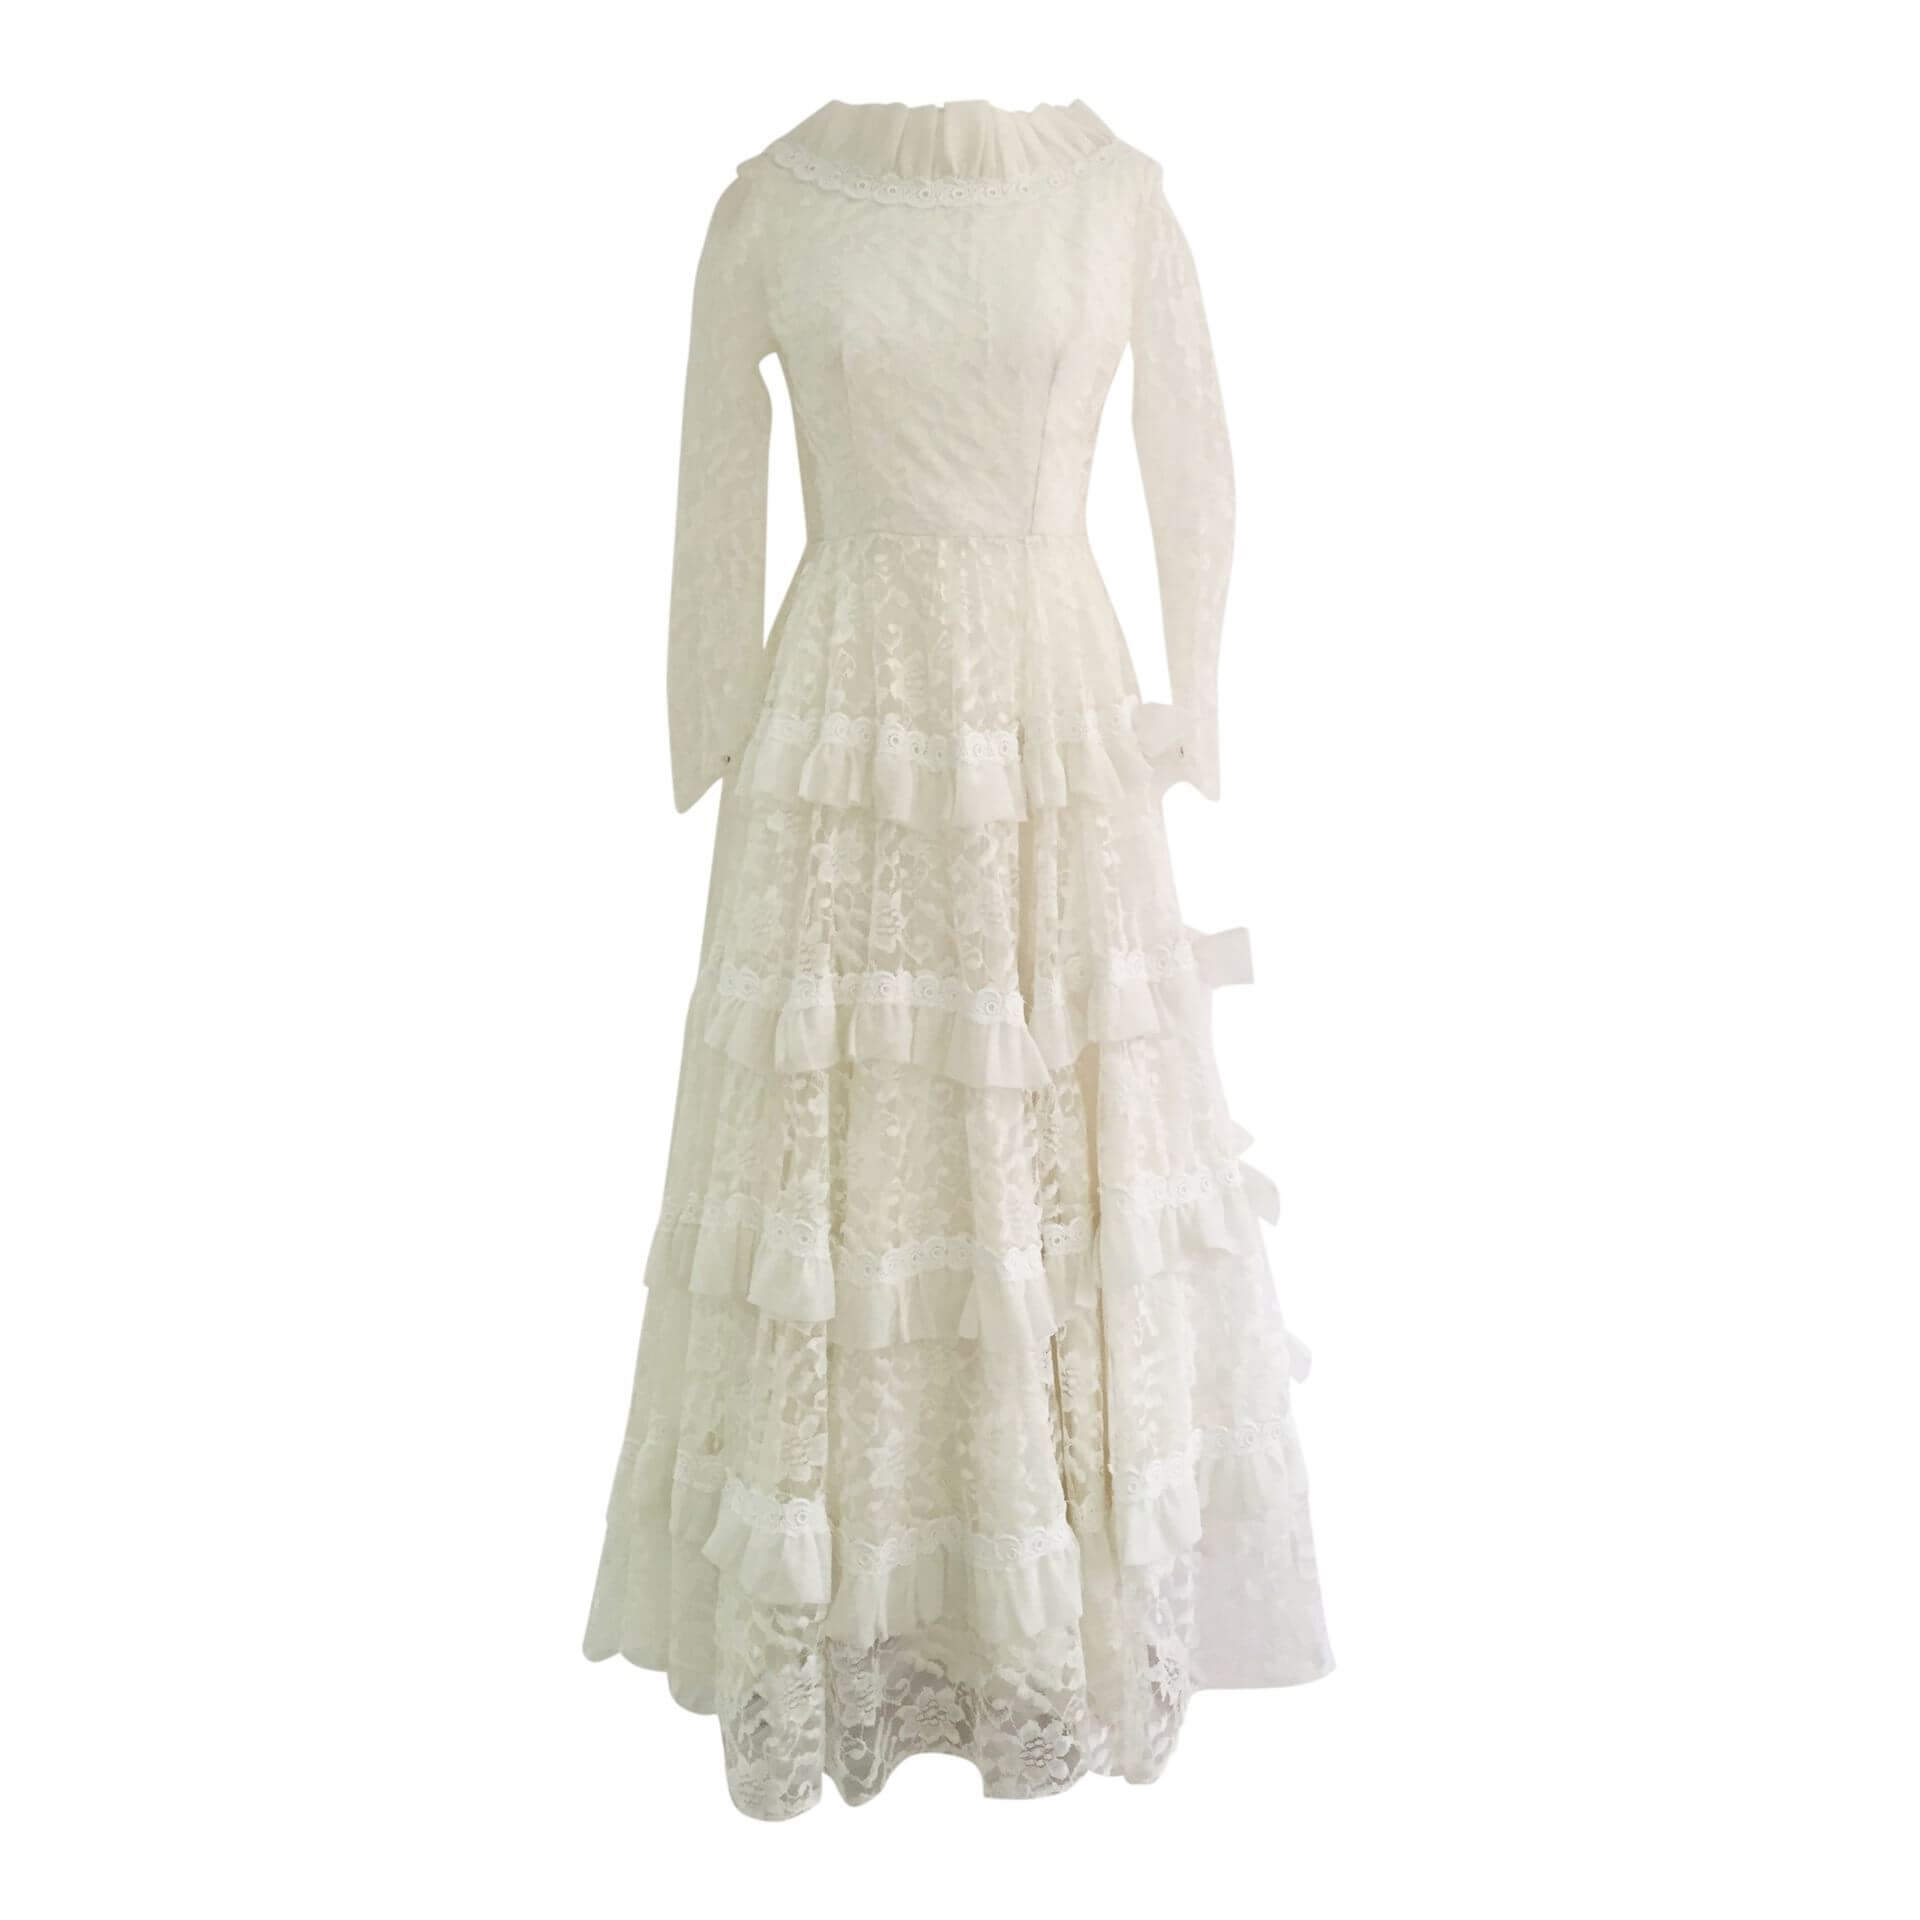 Vintage Wedding Dresses 1960s: 1960's Irish Vintage Wedding Dress